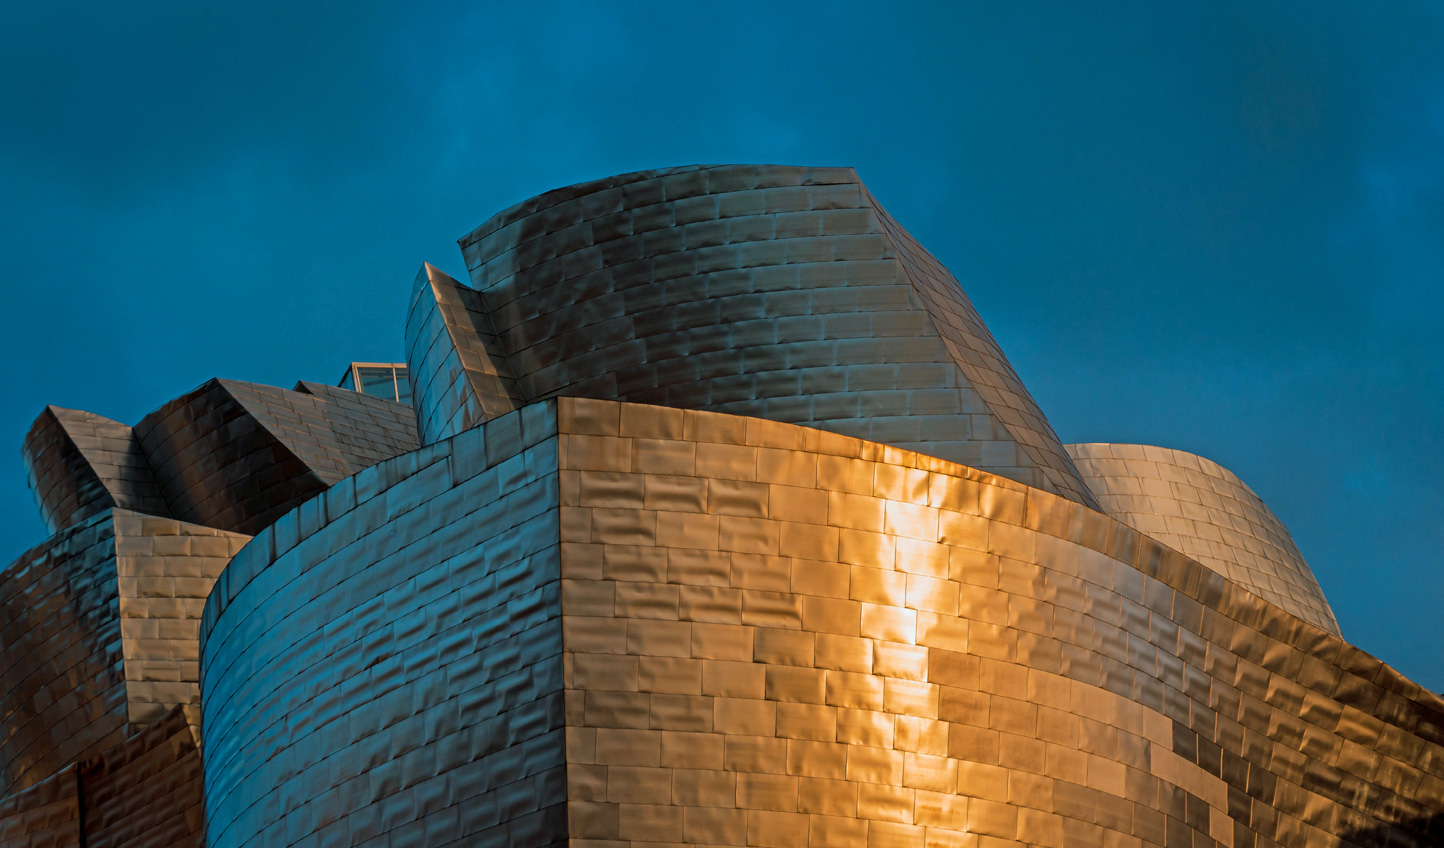 The iconic sight of the Guggenheim to greet you in Bilbao